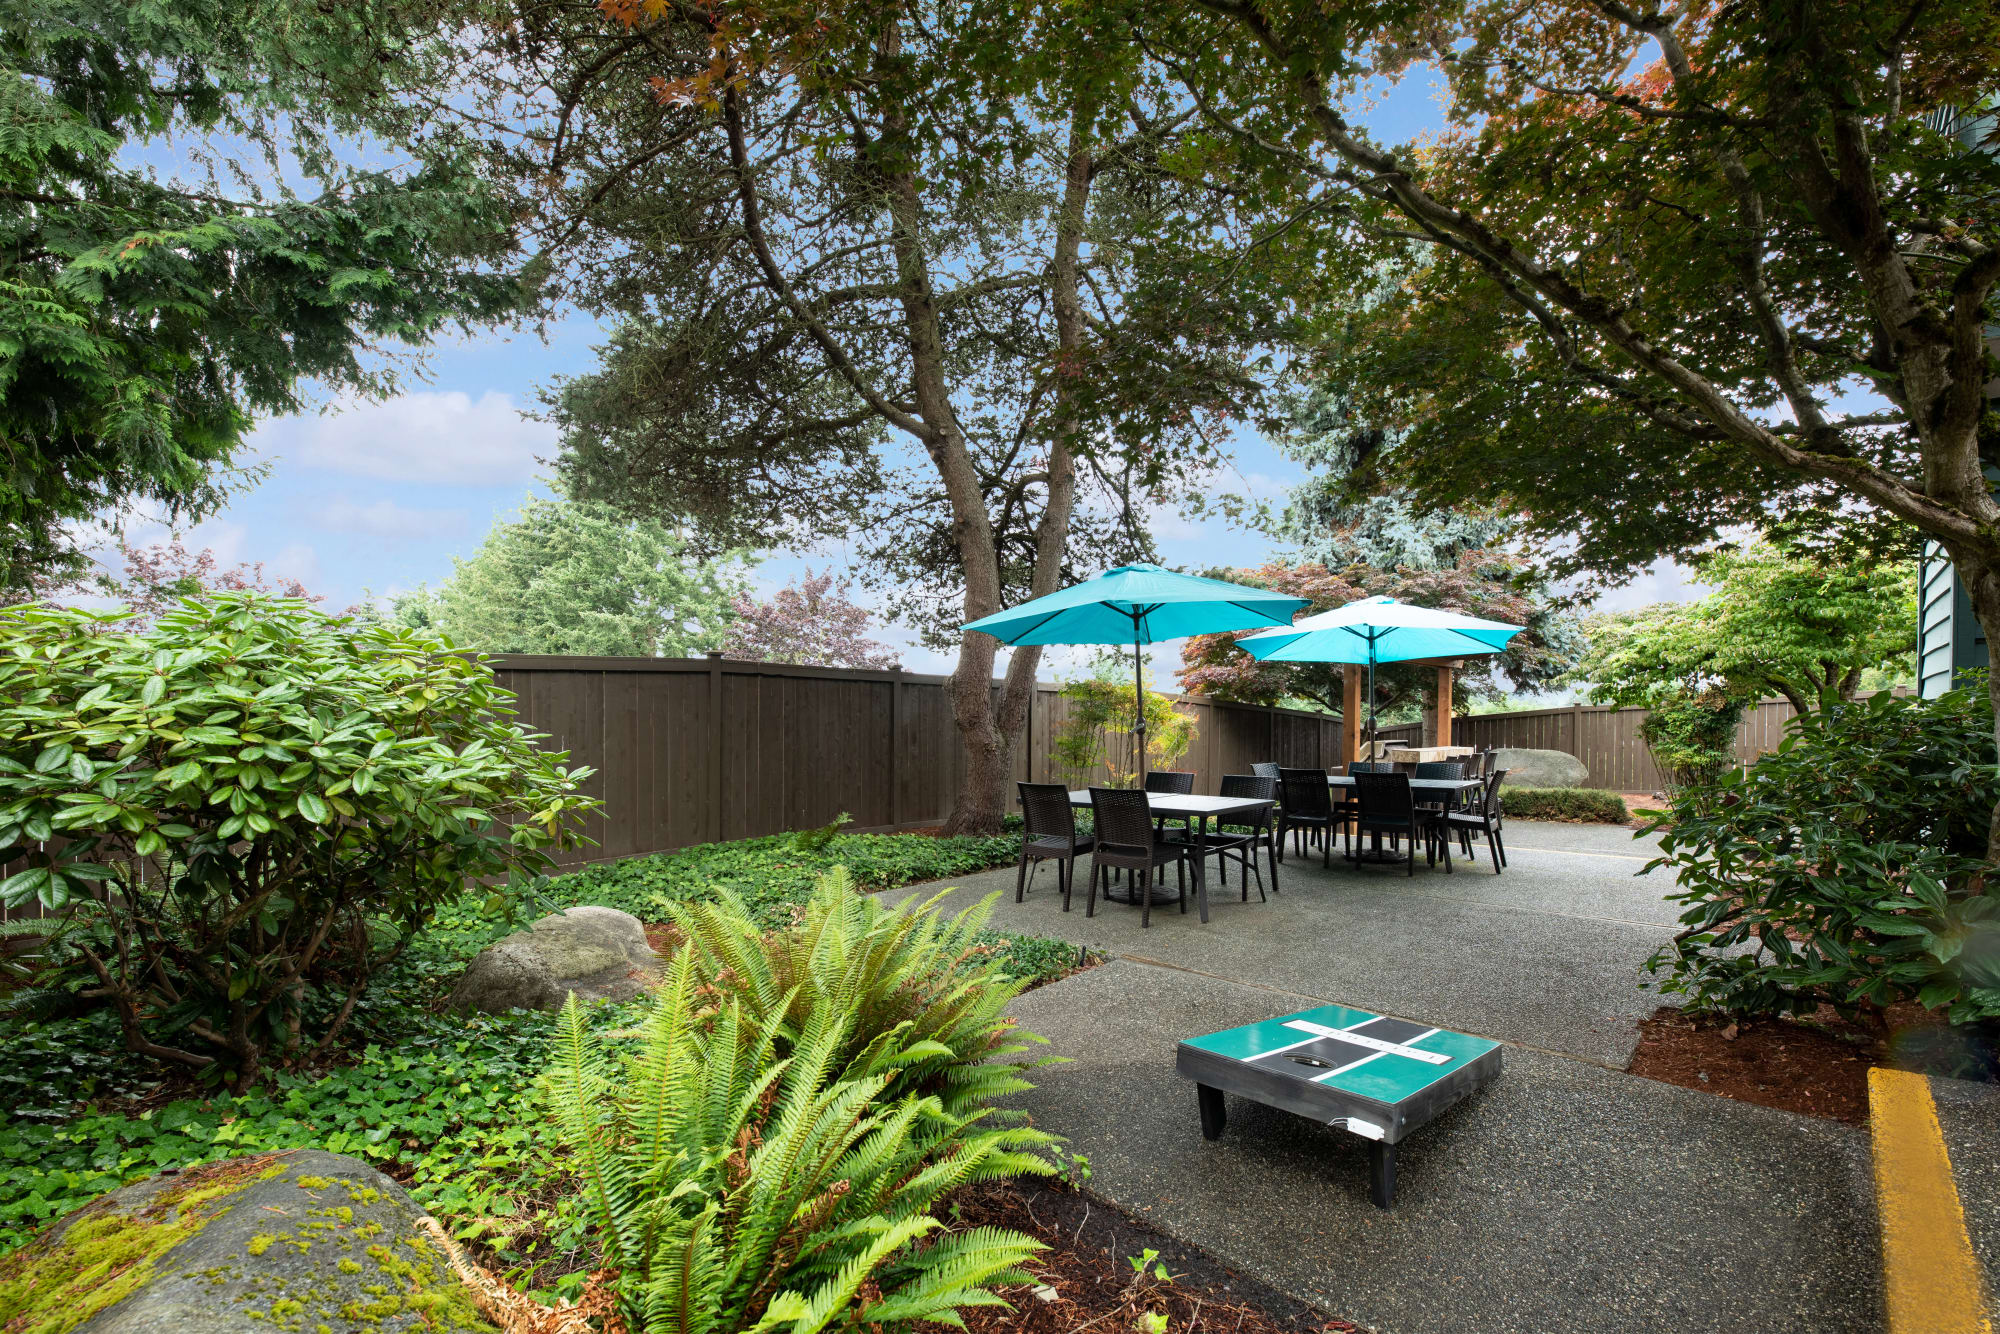 common area courtyard view with lush landscaping, corn hole set, chairs and umbrellas  at Latitude Apartments